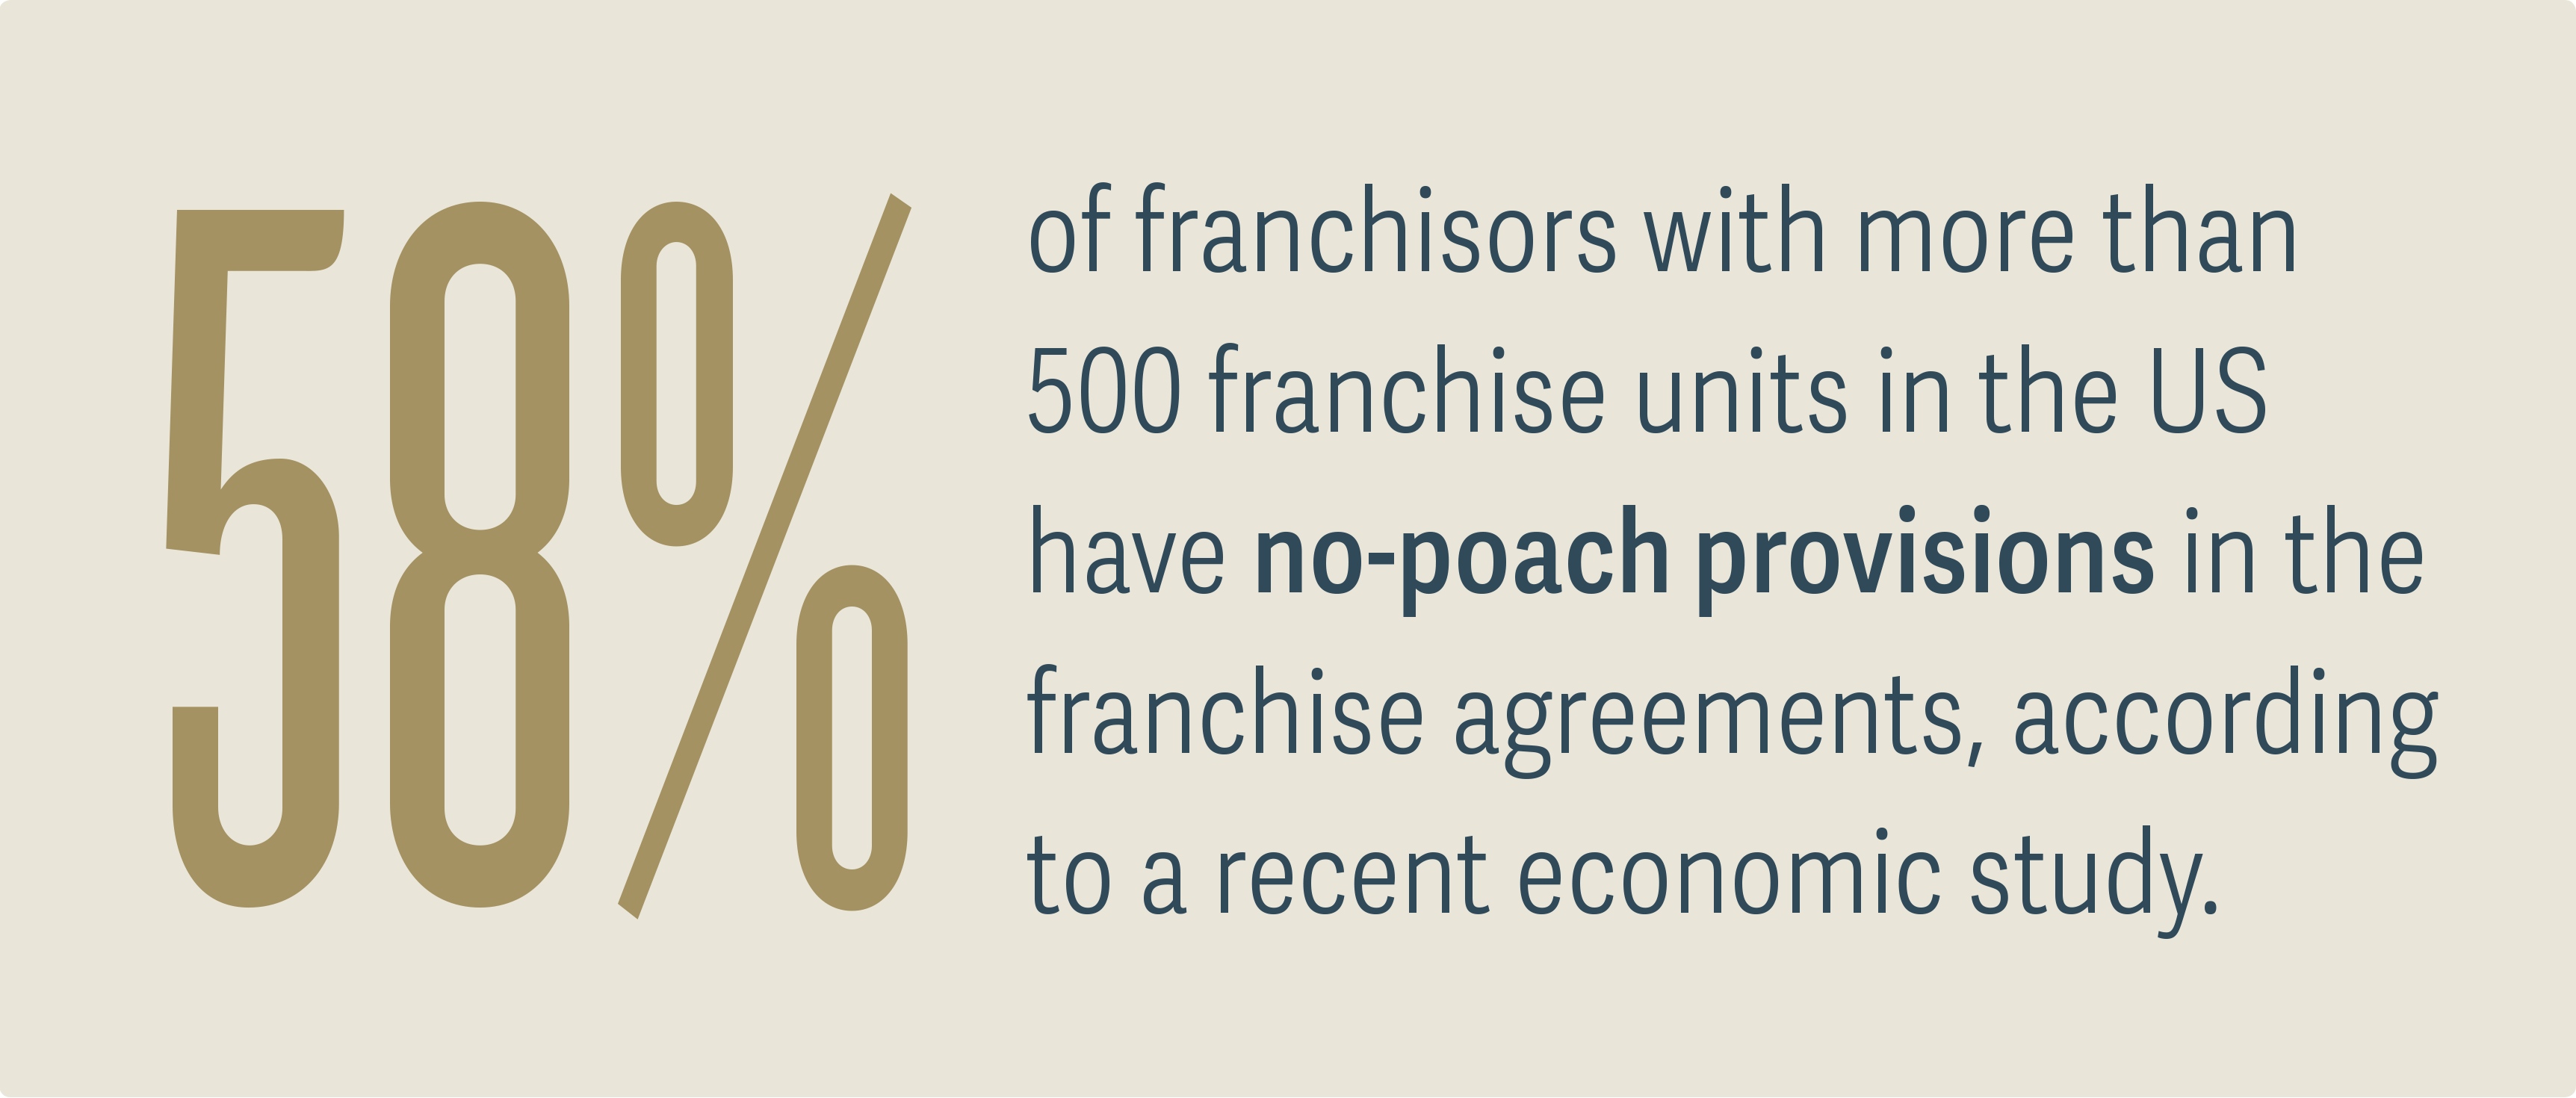 Franchise No-Poach Agreements Face Antitrust Scrutiny - Figure 1